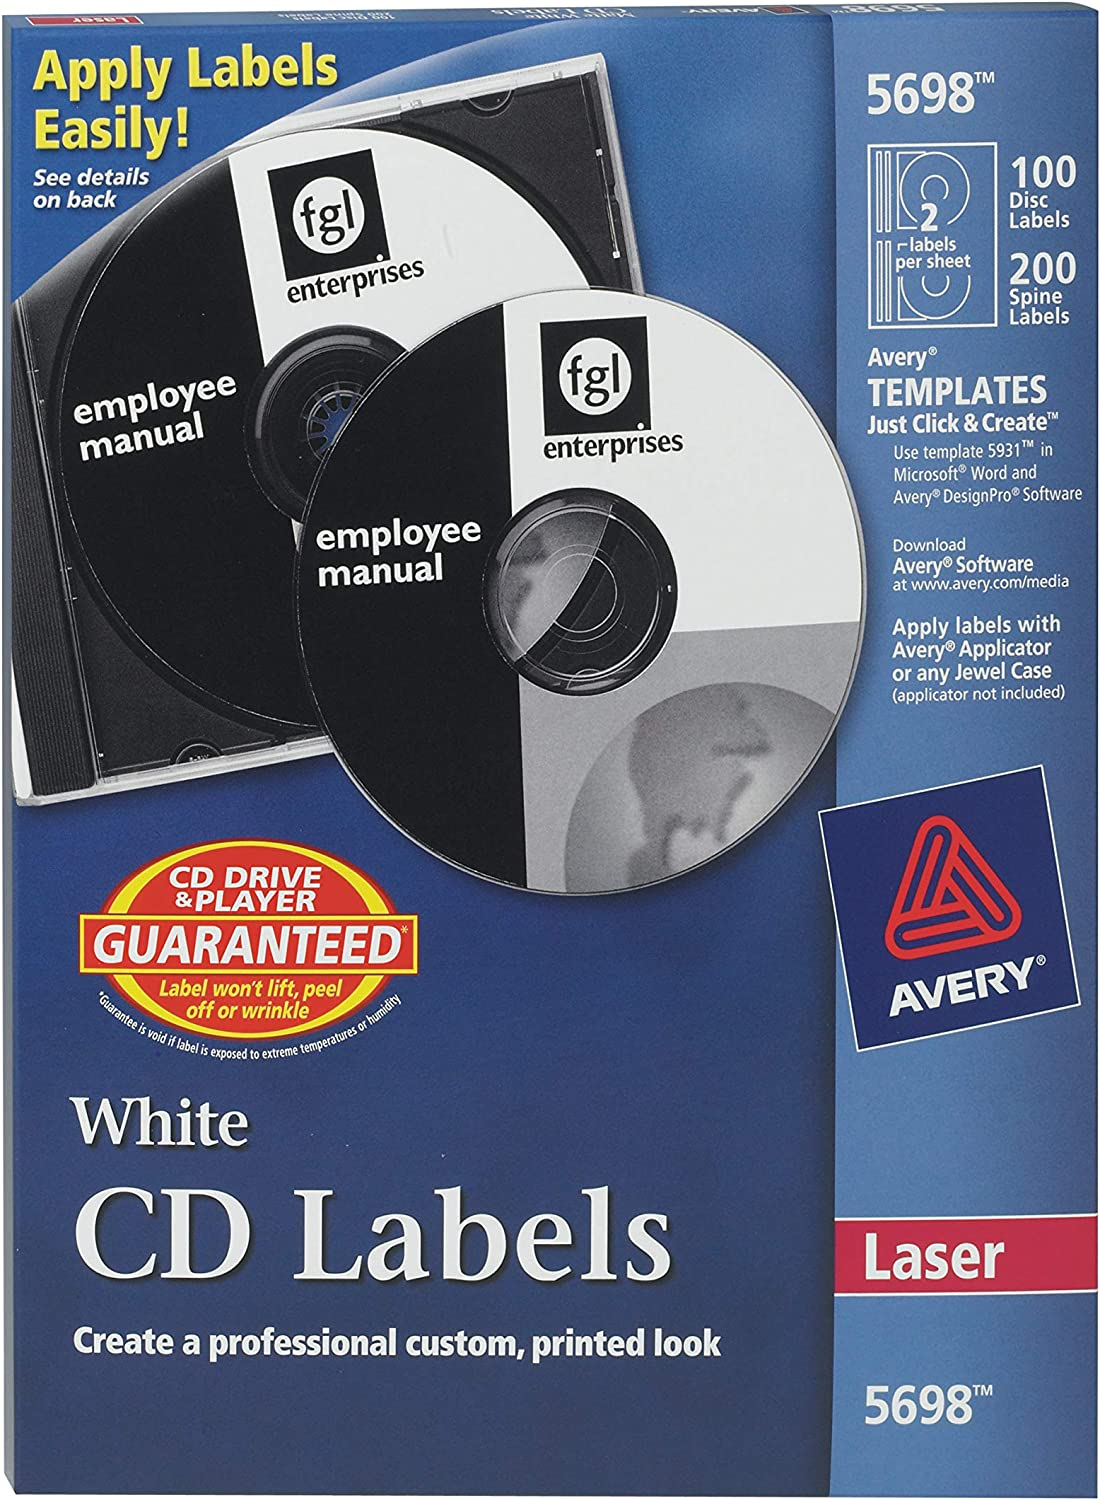 Amazon Com Avery Cd Labels For Laser Printers White 100 Disc Labels And 200 Spine Labels 5698 All Purpose Labels Office Products